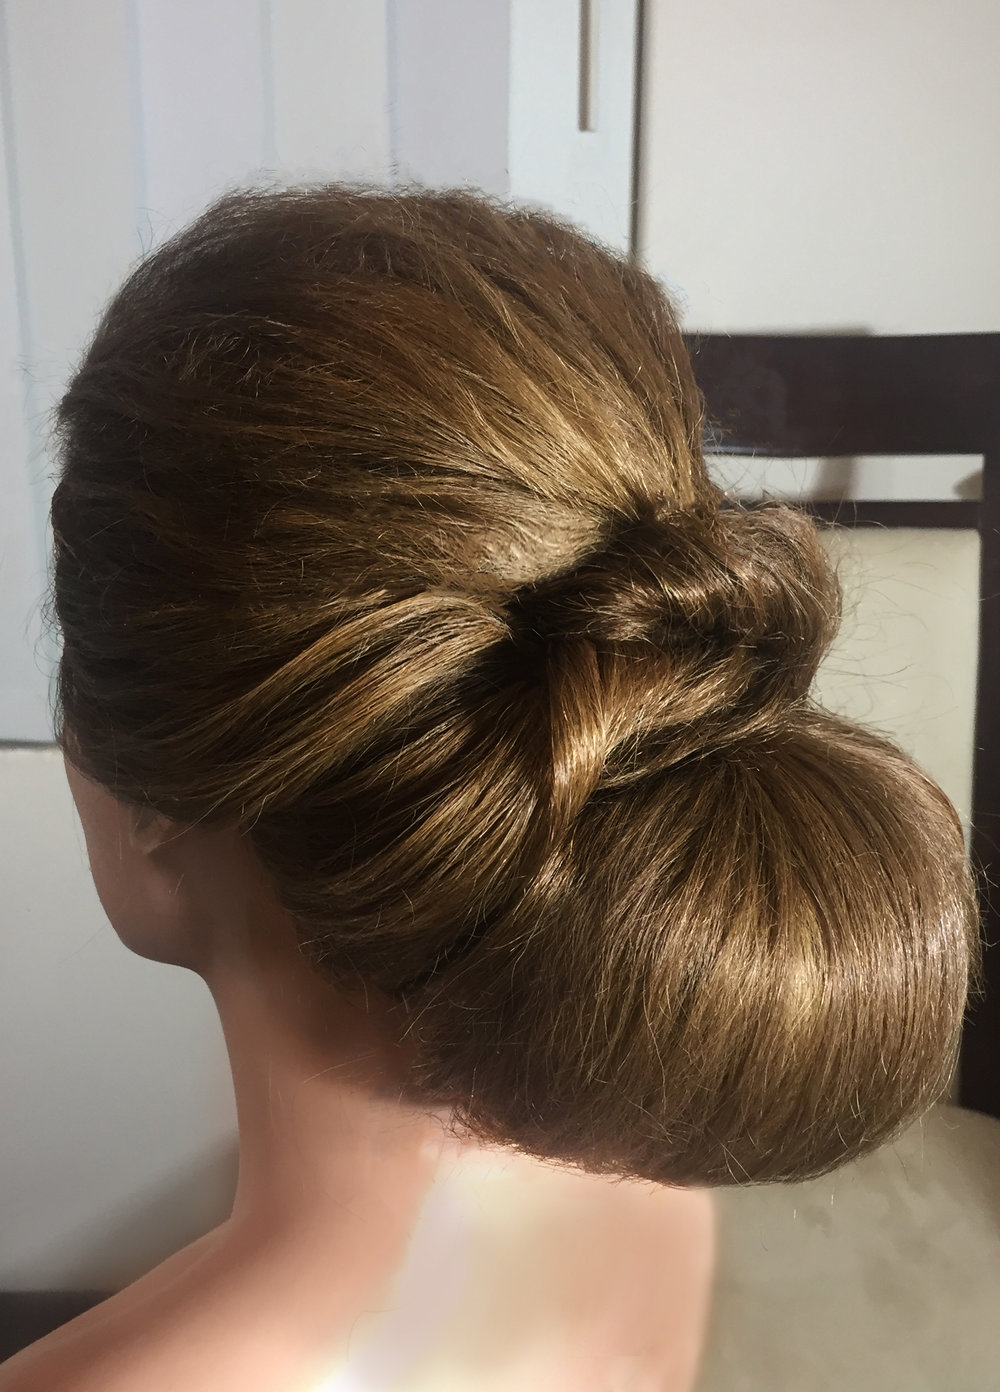 hair-chignon-wedding-perth.jpg